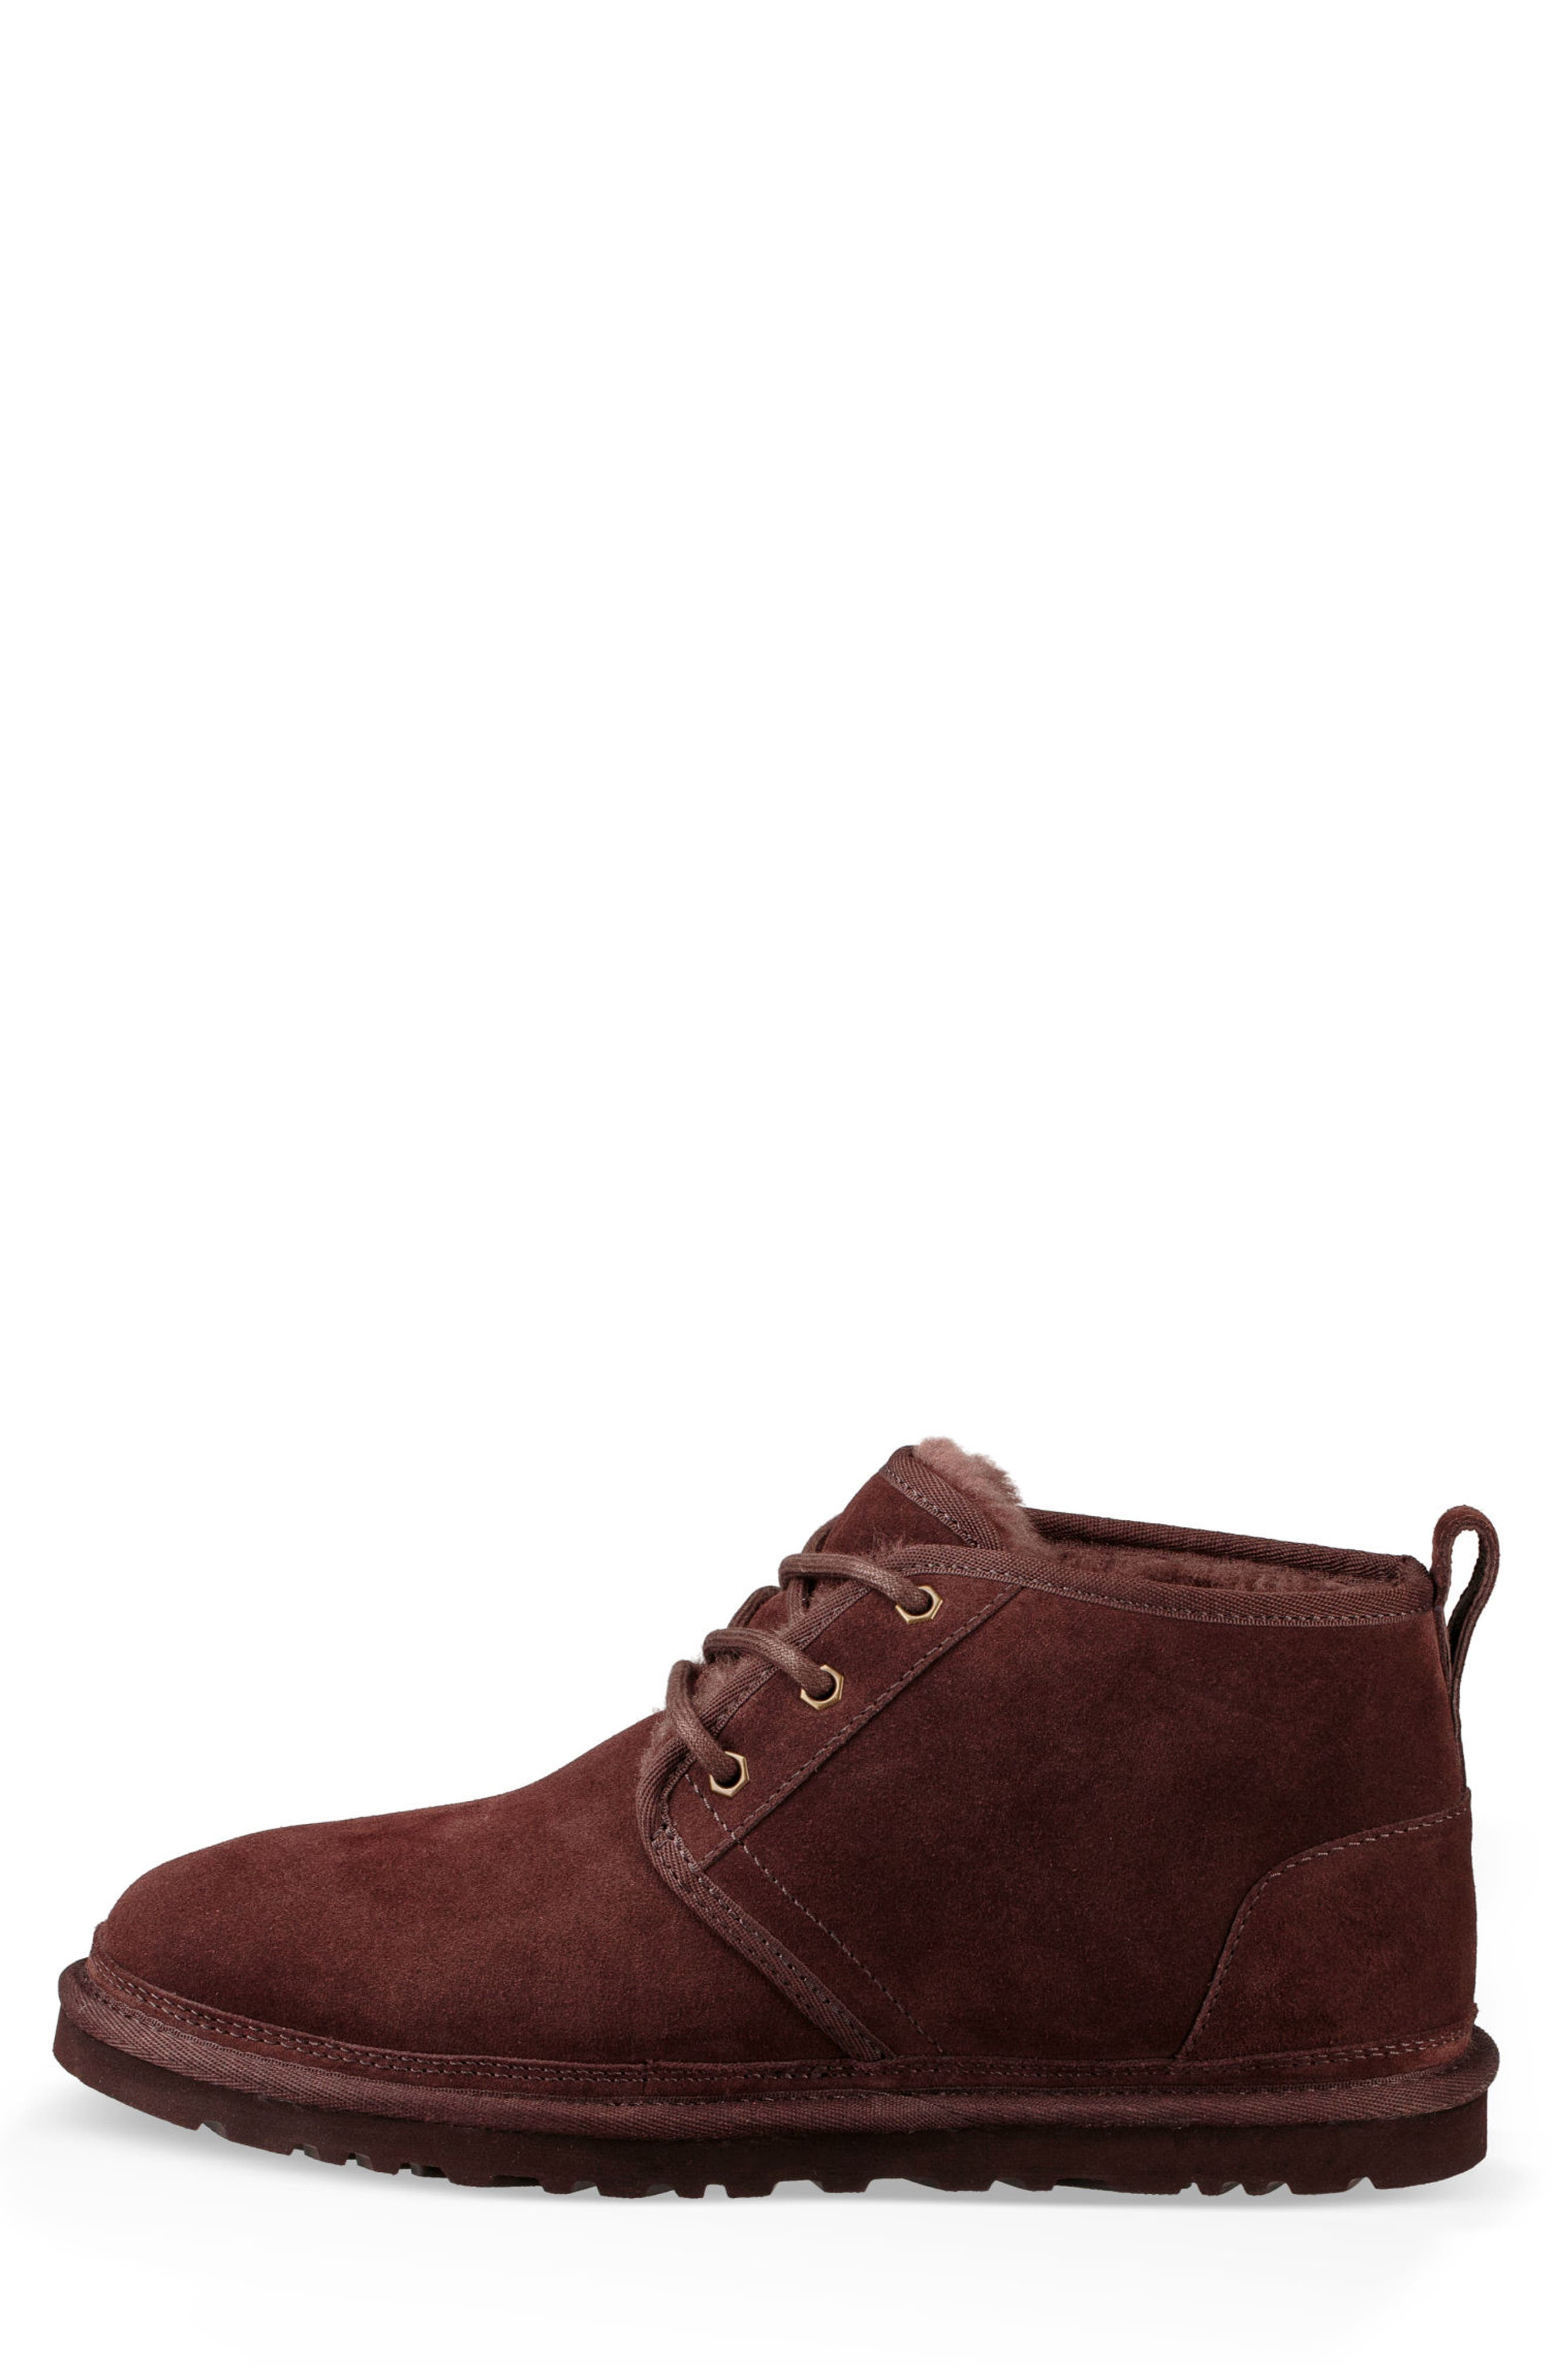 Neumel Chukka Boot,                             Alternate thumbnail 3, color,                             ESPRESSO SUEDE